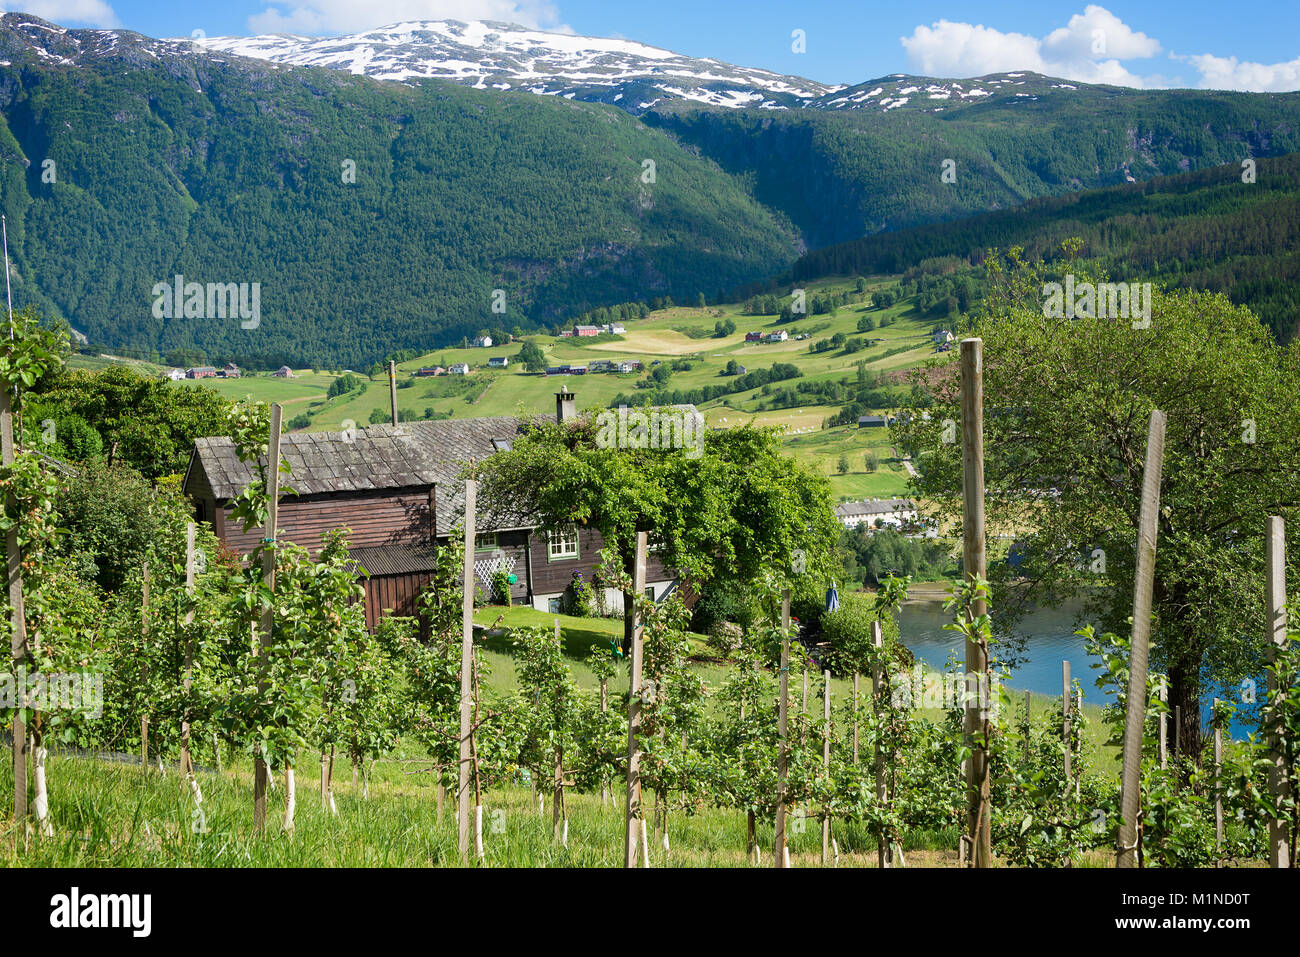 Fruit trees in an orchard on the hills around the Hardanger fjord with mountains with snow behind it showing the - Stock Image